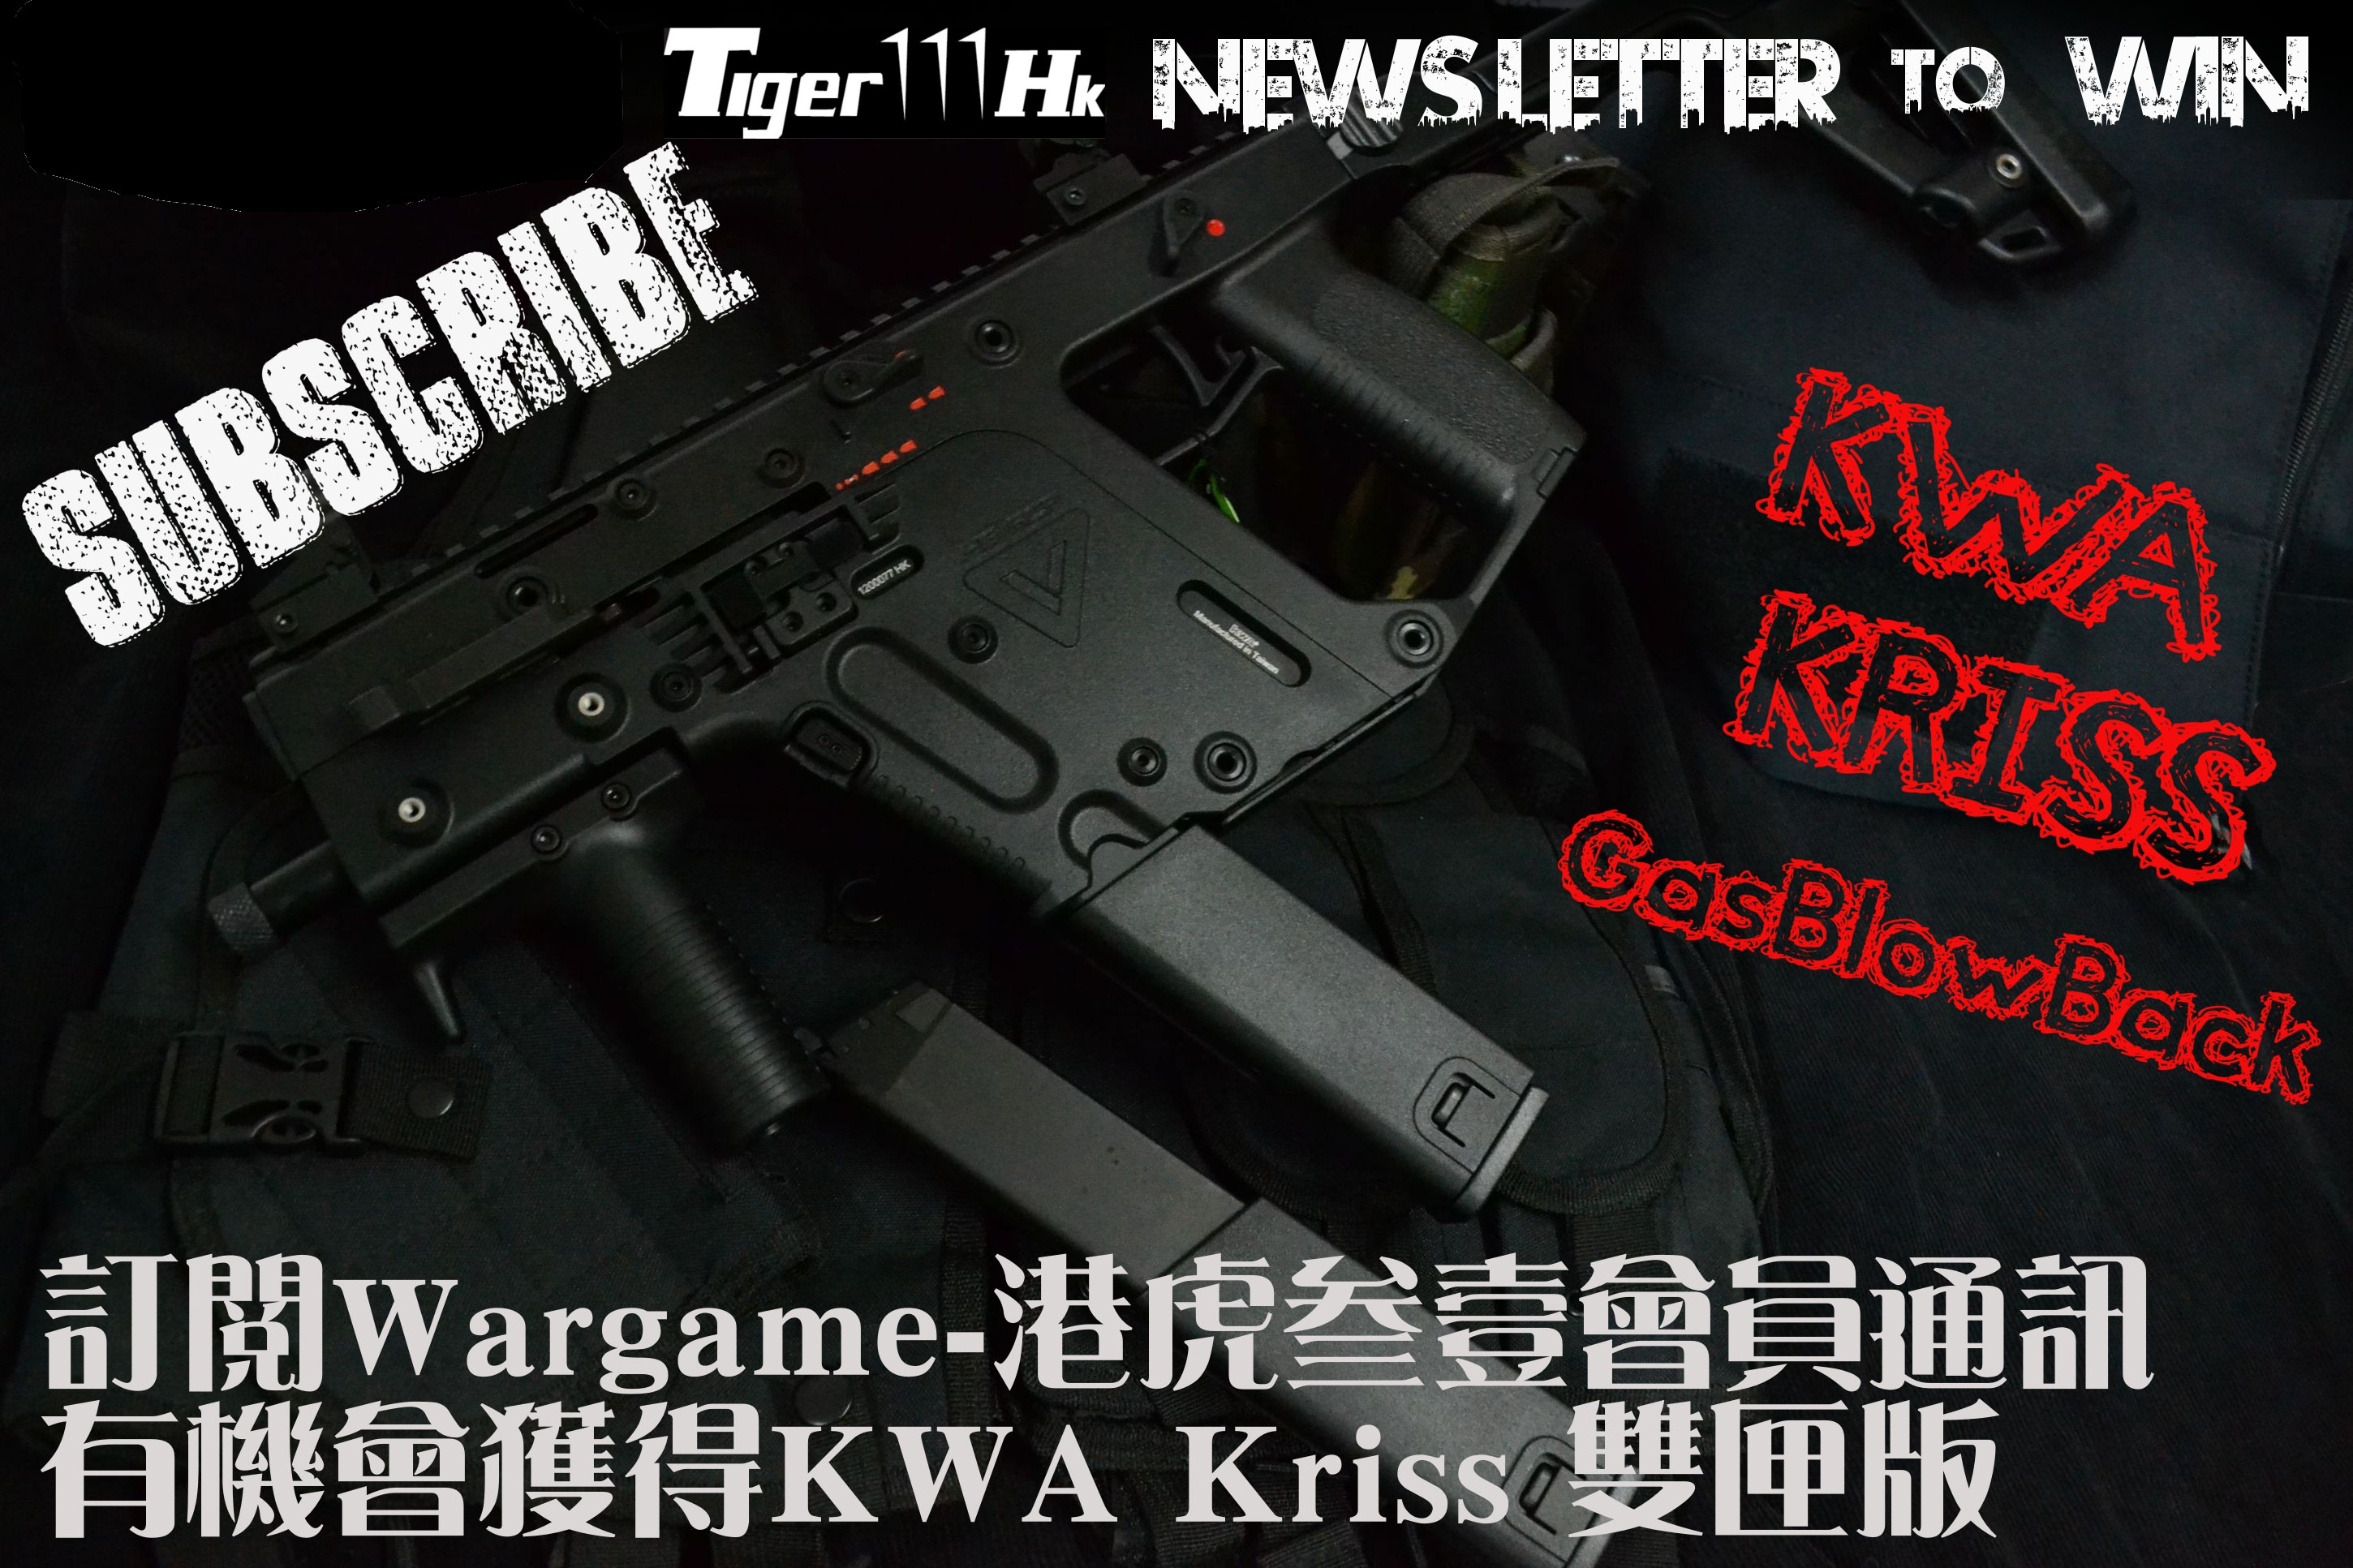 subscribe tiger111hk newsltter to get KWA KRISS GBBchinese